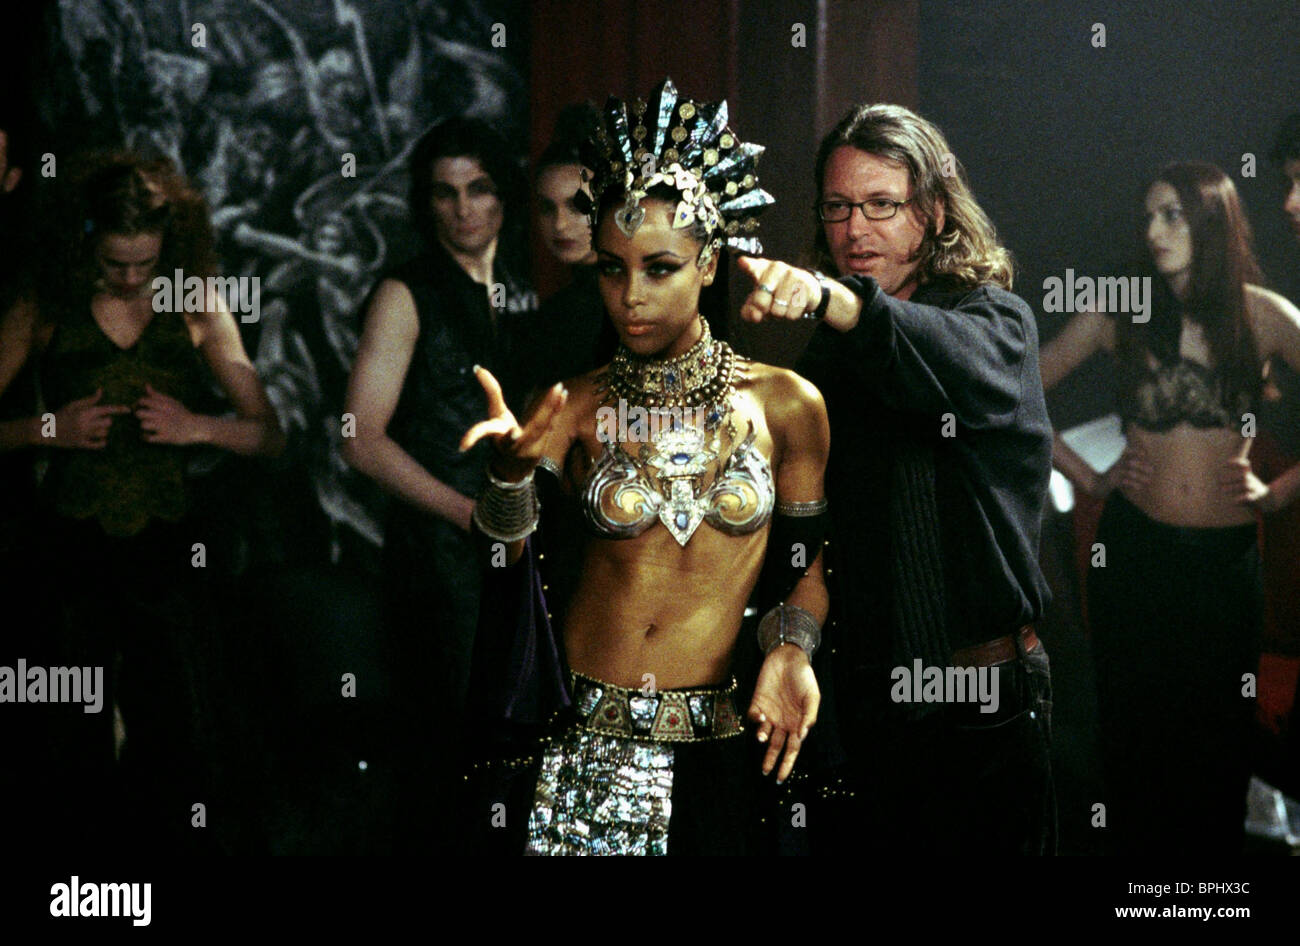 AALIYAH & MICHAEL RYMER QUEEN OF THE DAMNED (2002) - Stock Image